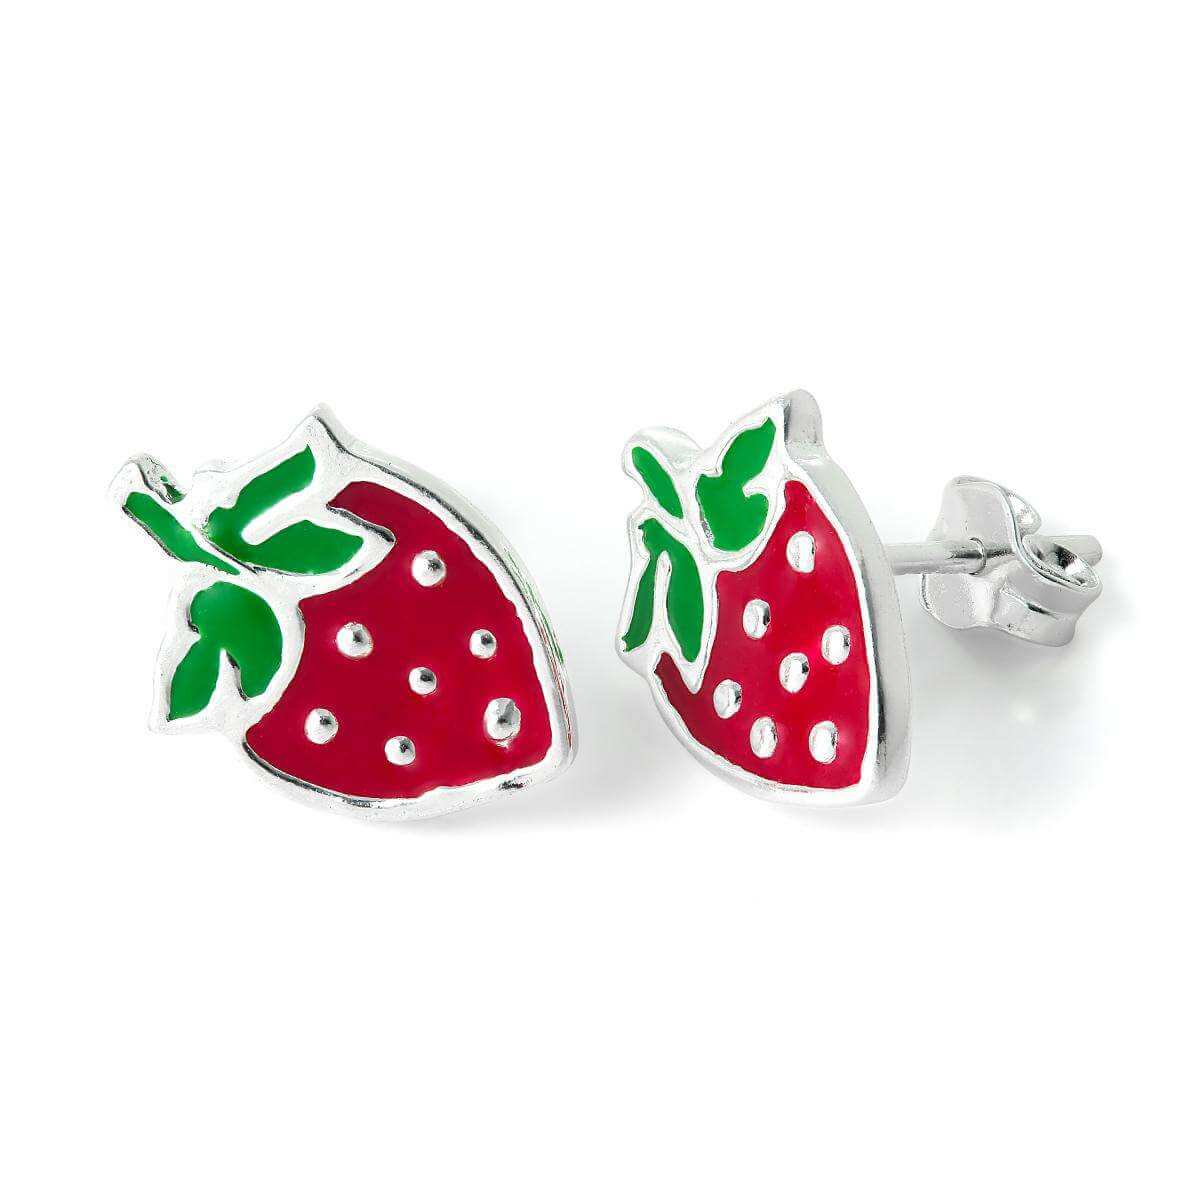 fruit club acrylic strawberry in red from stud aliexpress on women fashion punk jewelry night item earrings accessories com